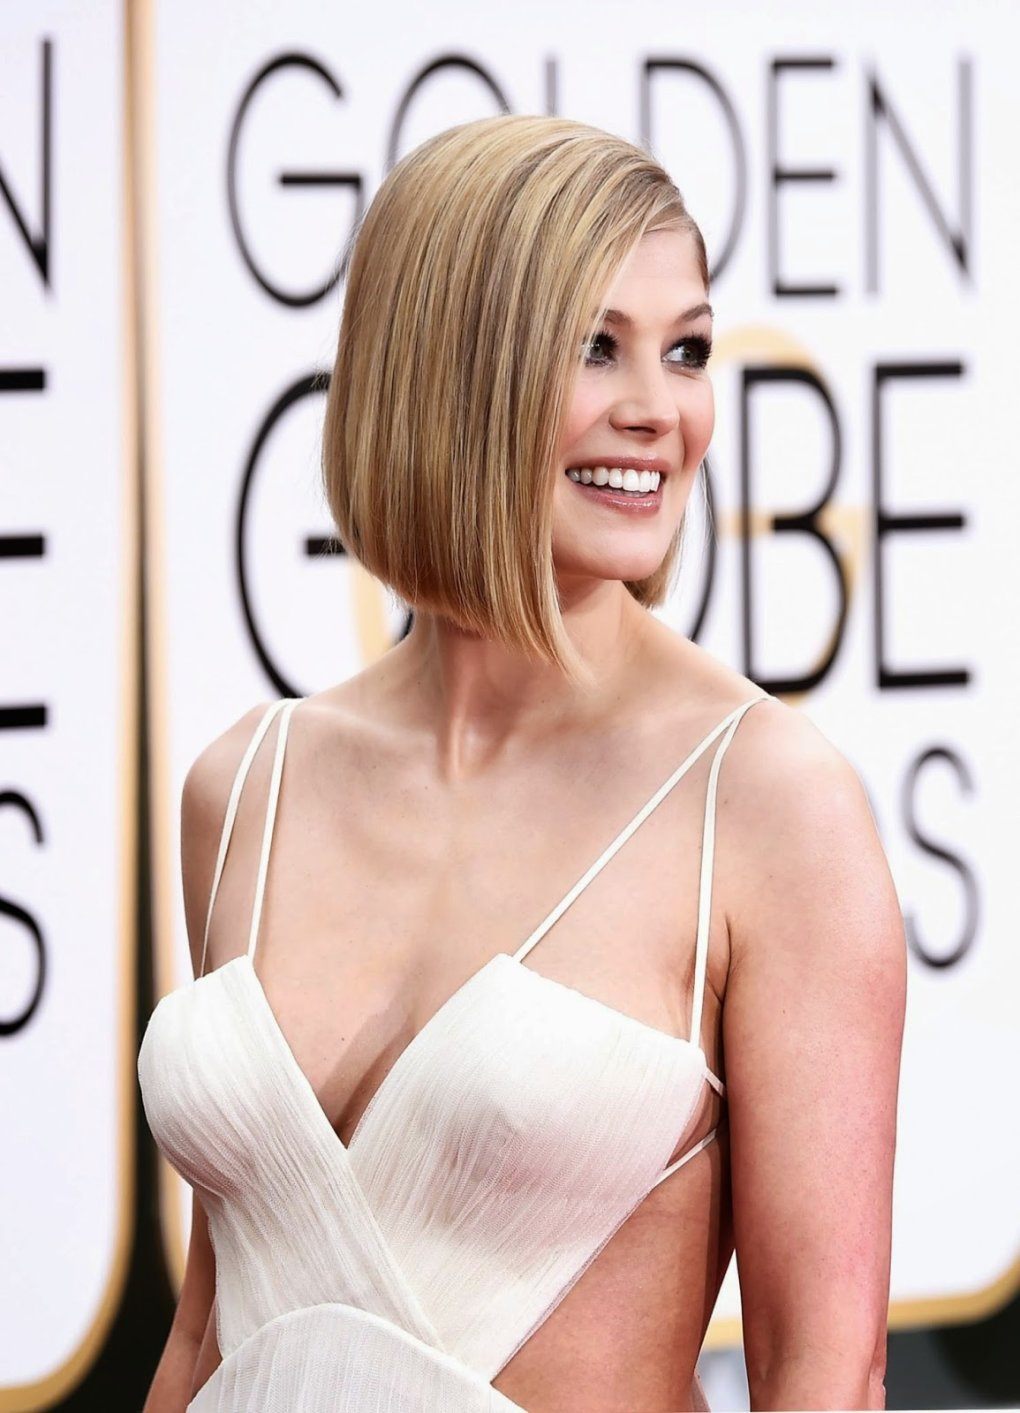 42 Hot Pictures Of Rosamund Pike Are Pure Bliss For Fans-8419